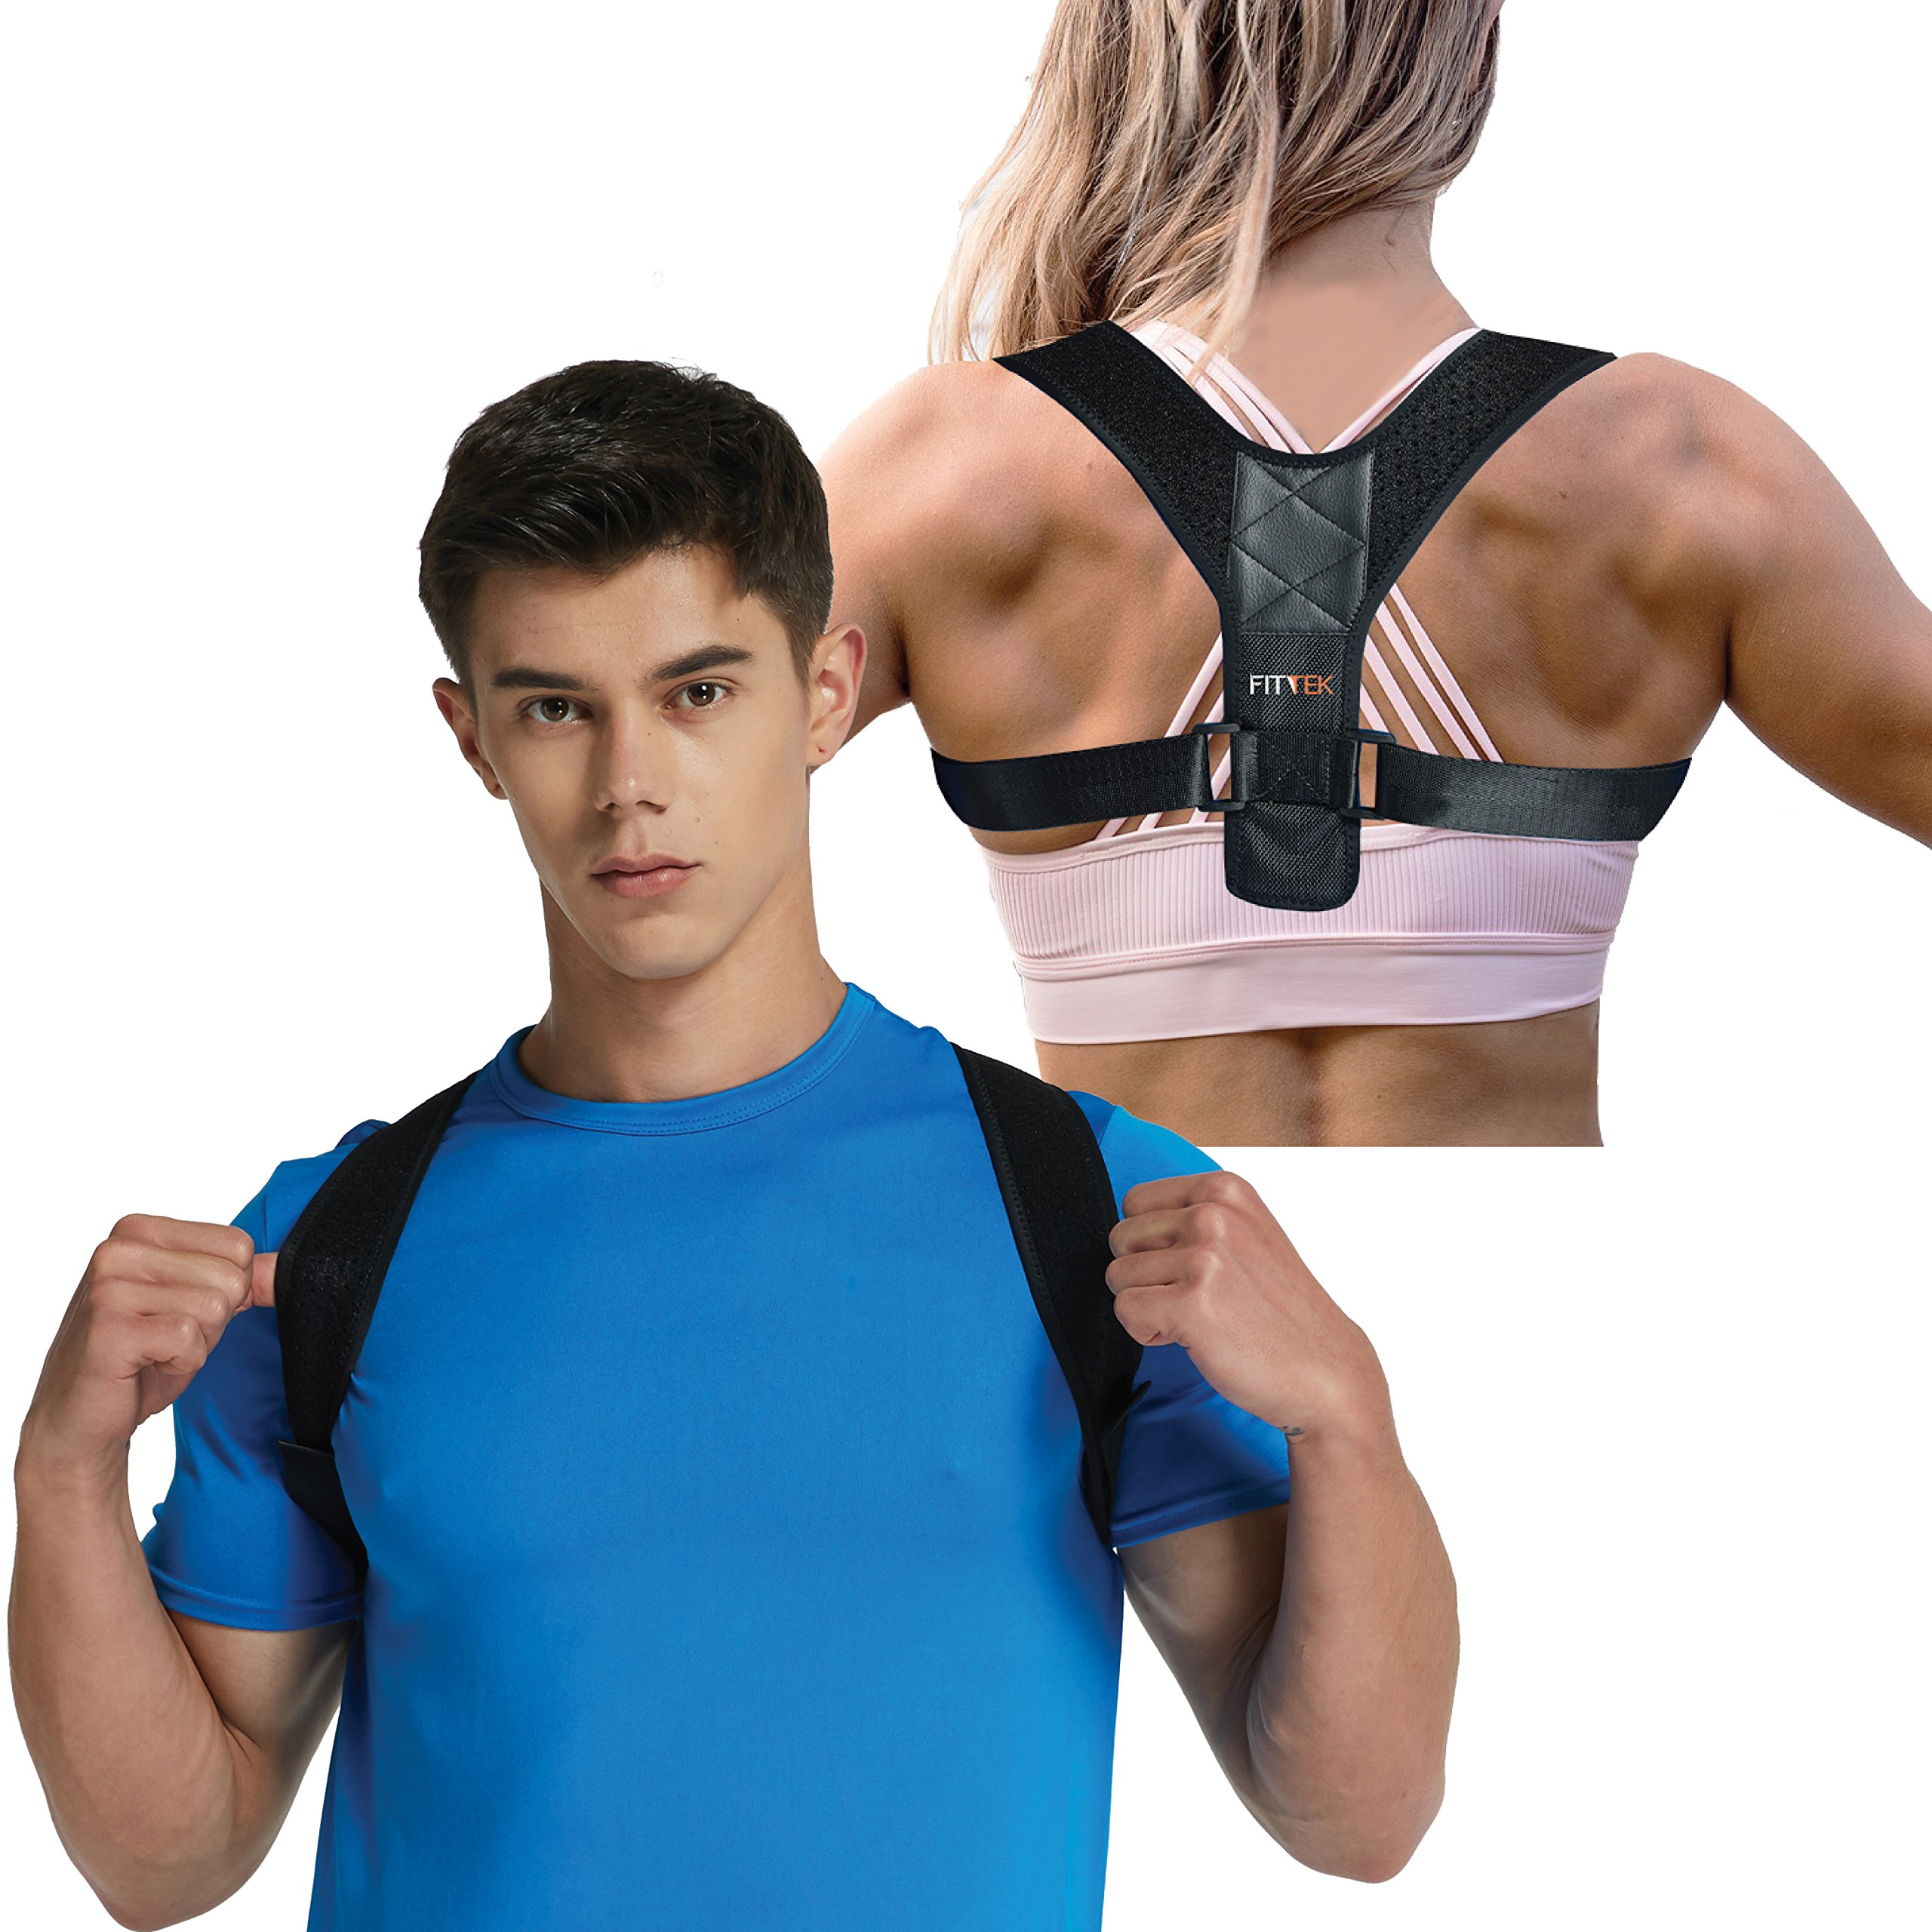 Posture Corrector Brace for Men and Women Kyphosis Back Shoulder Support by FitTek